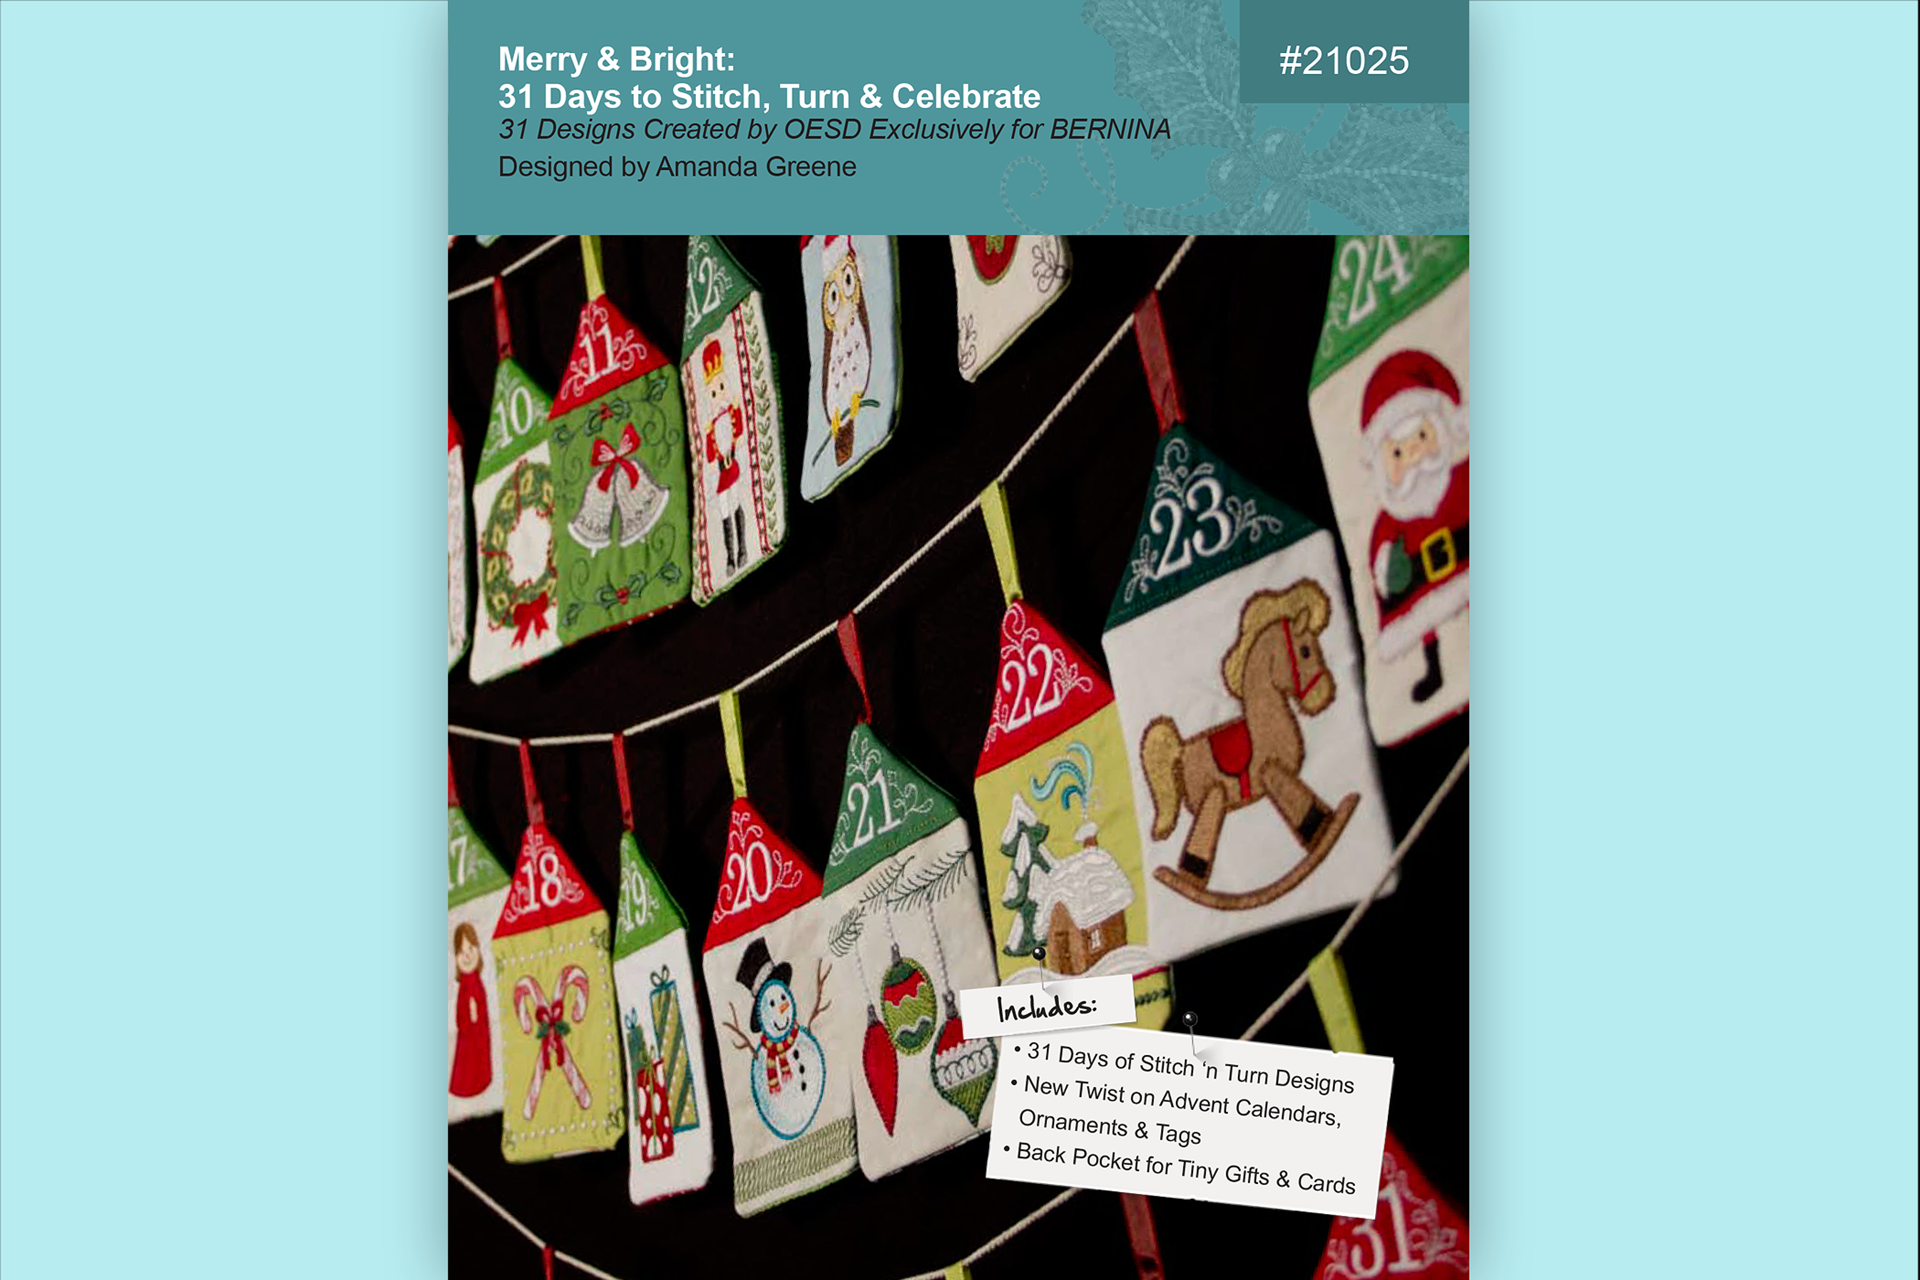 Merry and Bright – BERNINA Exclusive Embroidery Collection #21025